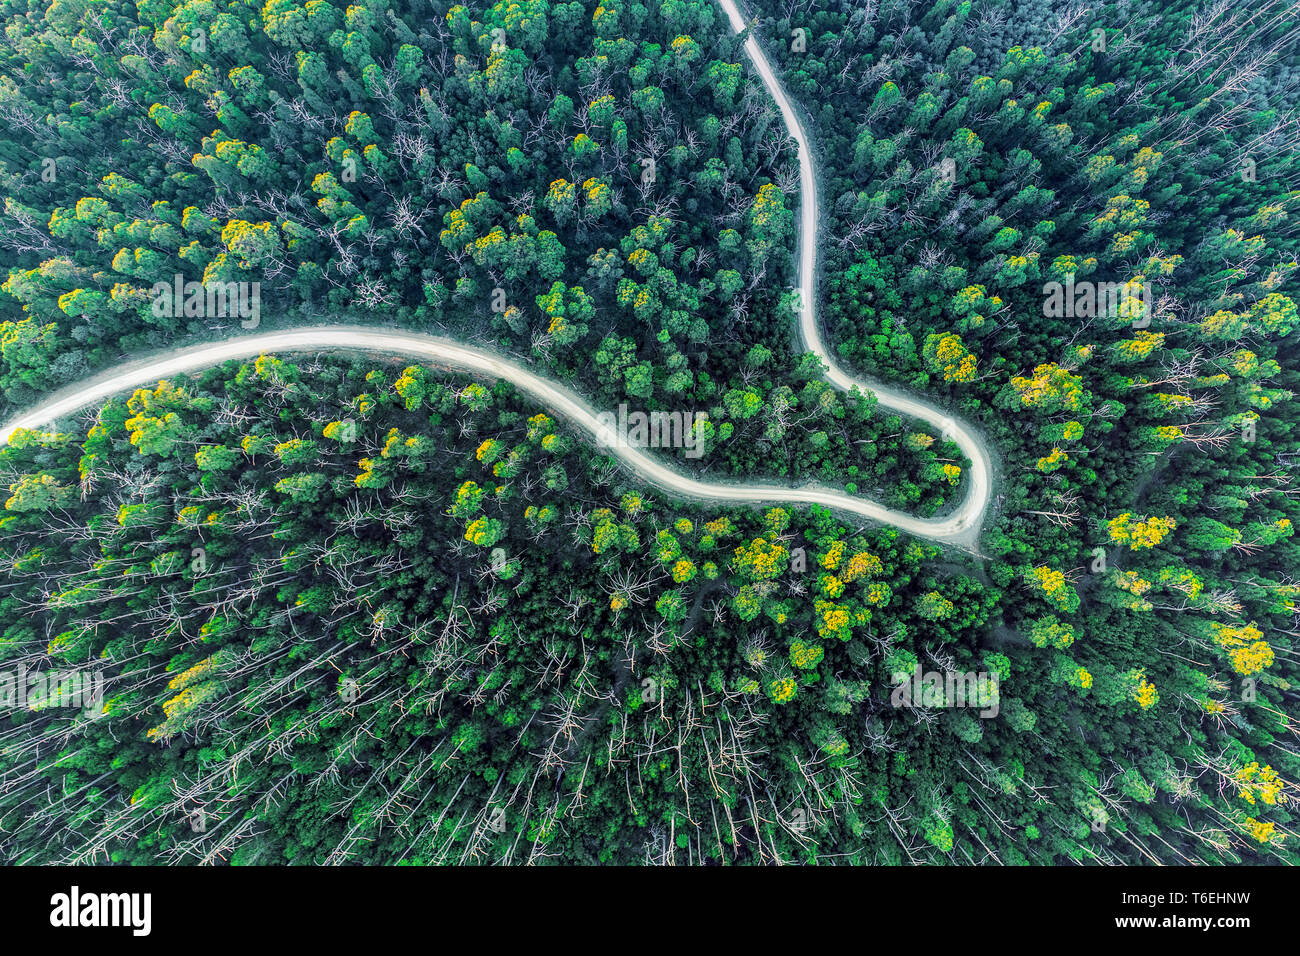 Top down view of road bending through eucalyptus forest at sunset Stock Photo